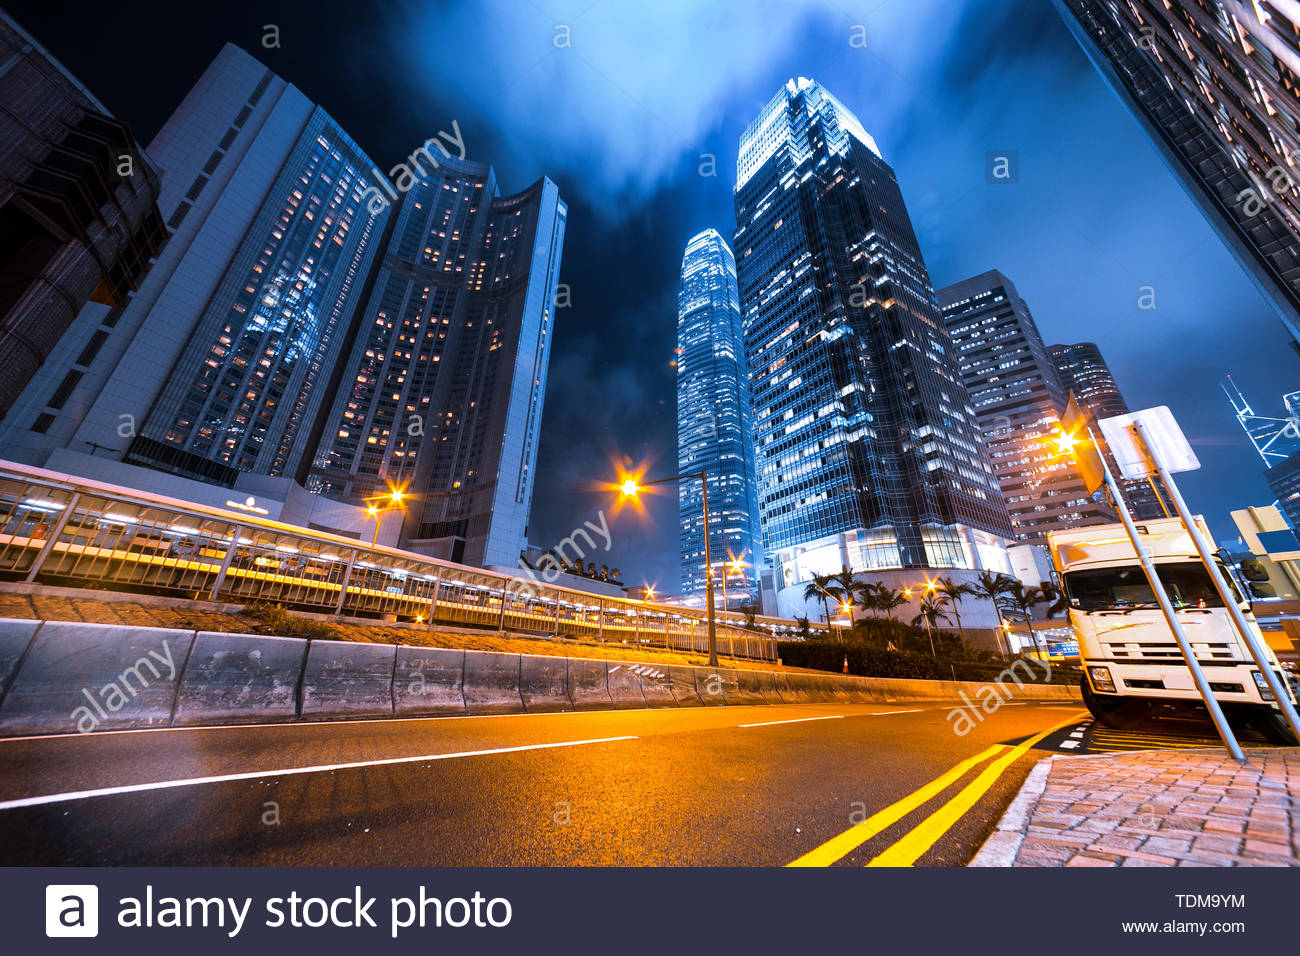 Busy traffic light trails and office buildings. Stock Photo